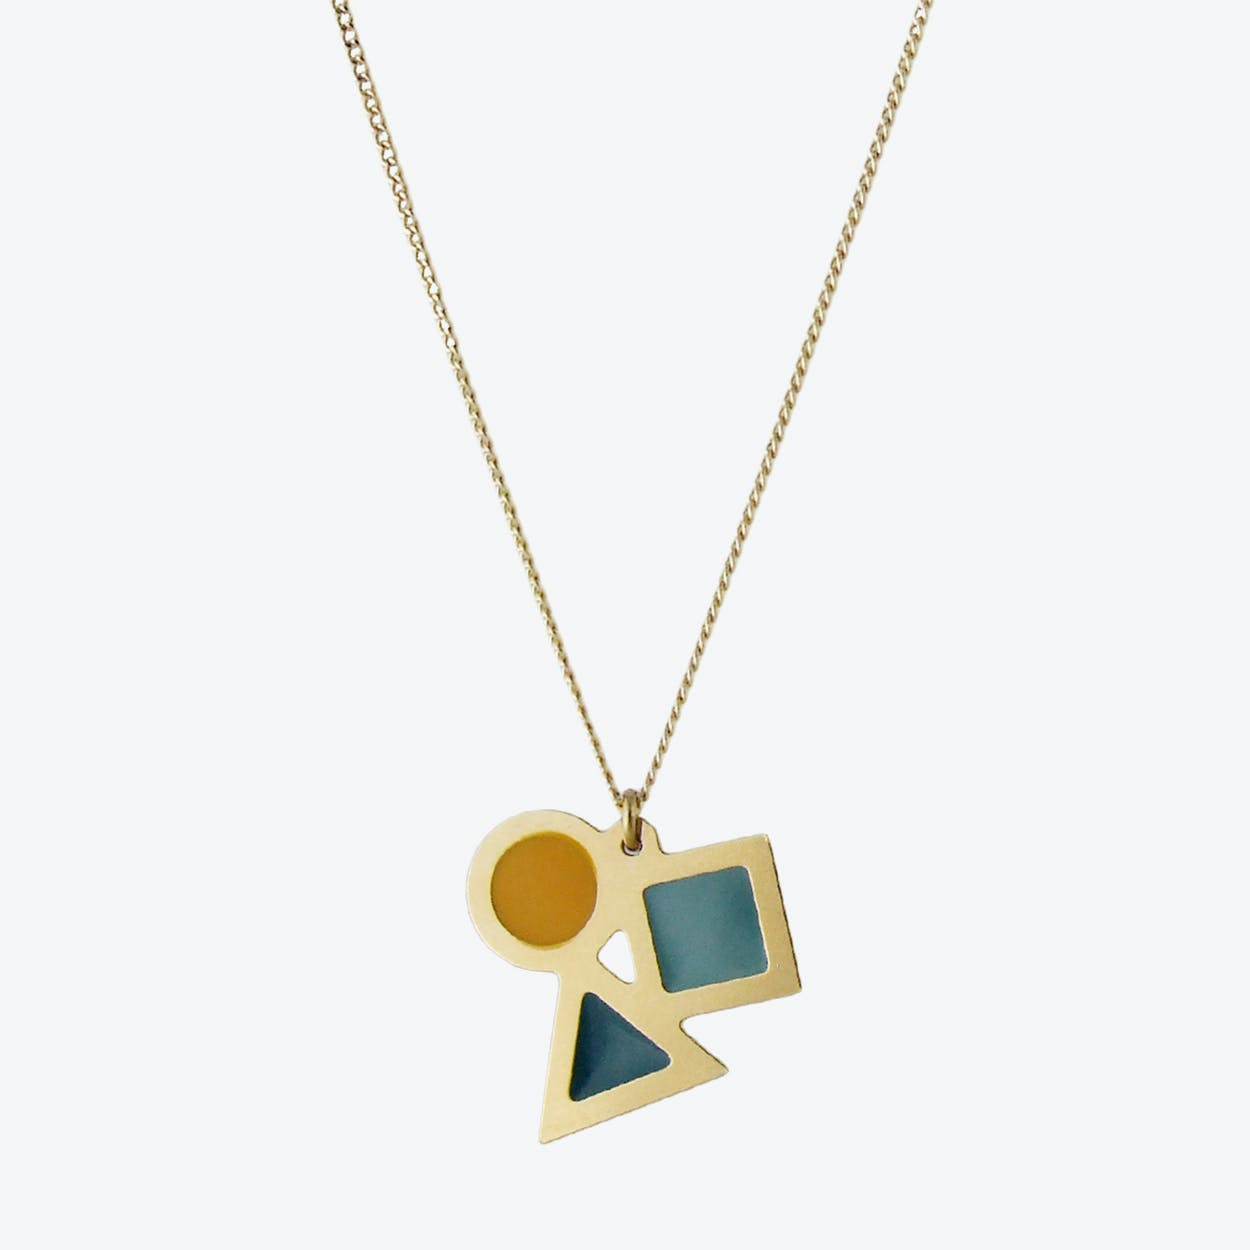 Geometric Shapes Necklace in Emerald, Duck Egg, and Mustard